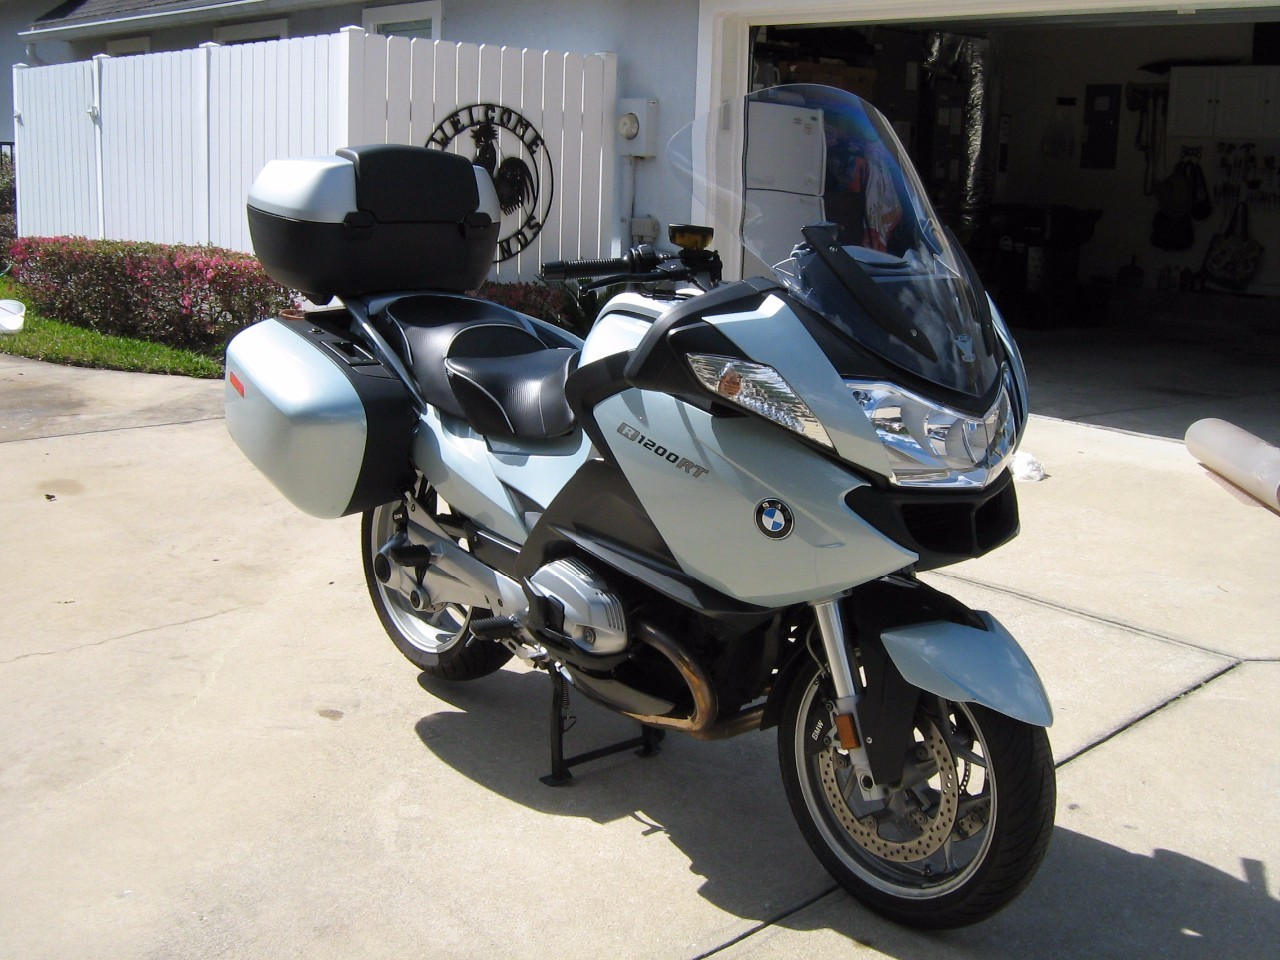 2011 bmw r 1200 rt touring motorcycle from green cove springs fl. Cars Review. Best American Auto & Cars Review